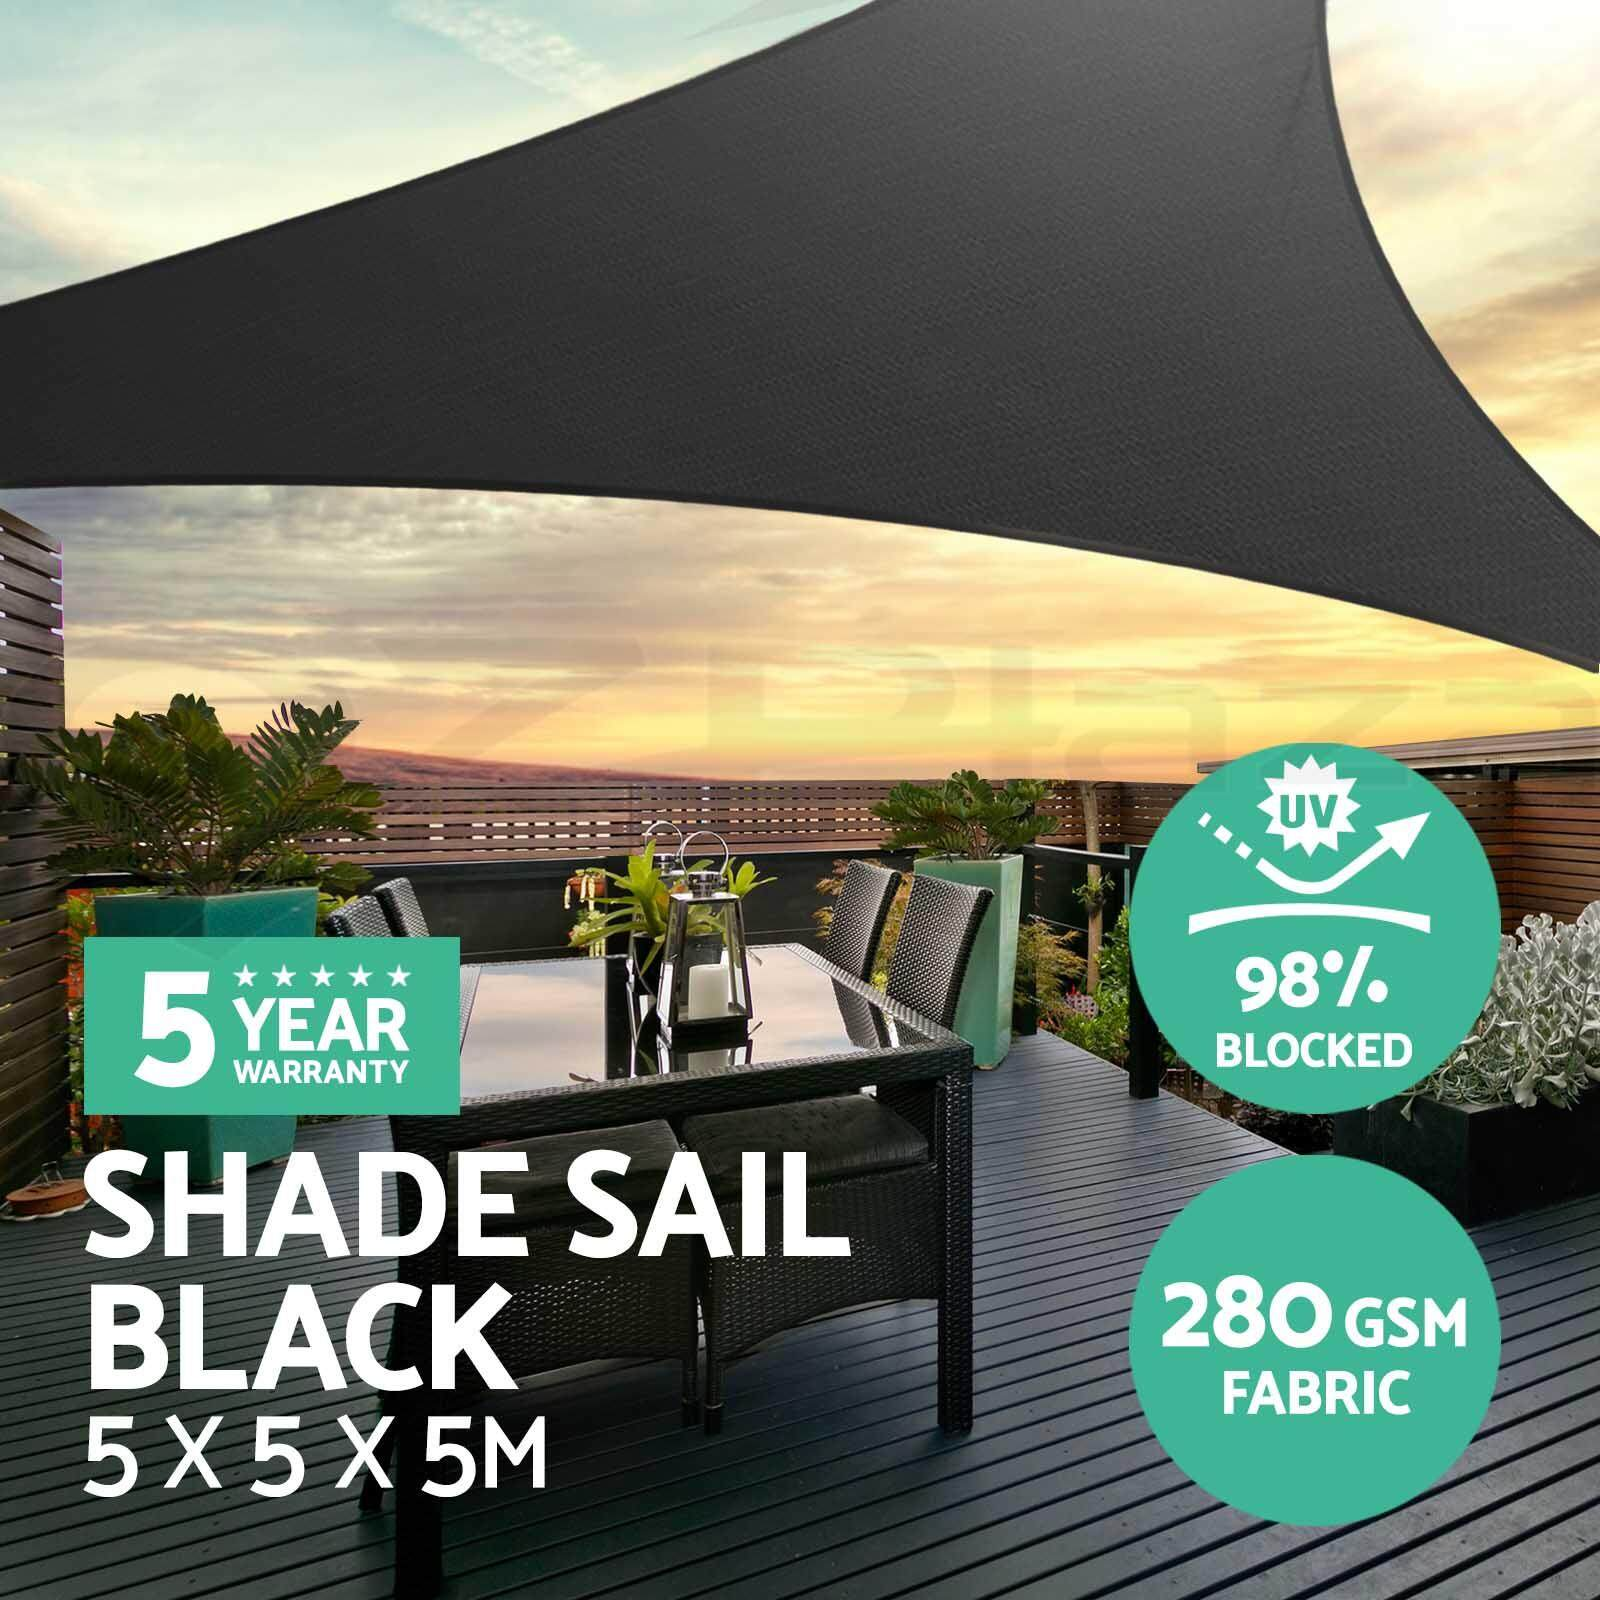 Home Shades Awnings Buy At Best Price In Real Screen Toddler 2 Orange Extra Heavy Duty Shade Sail Sun Canopy Outdoor Triangle Square Rectangle Black 55